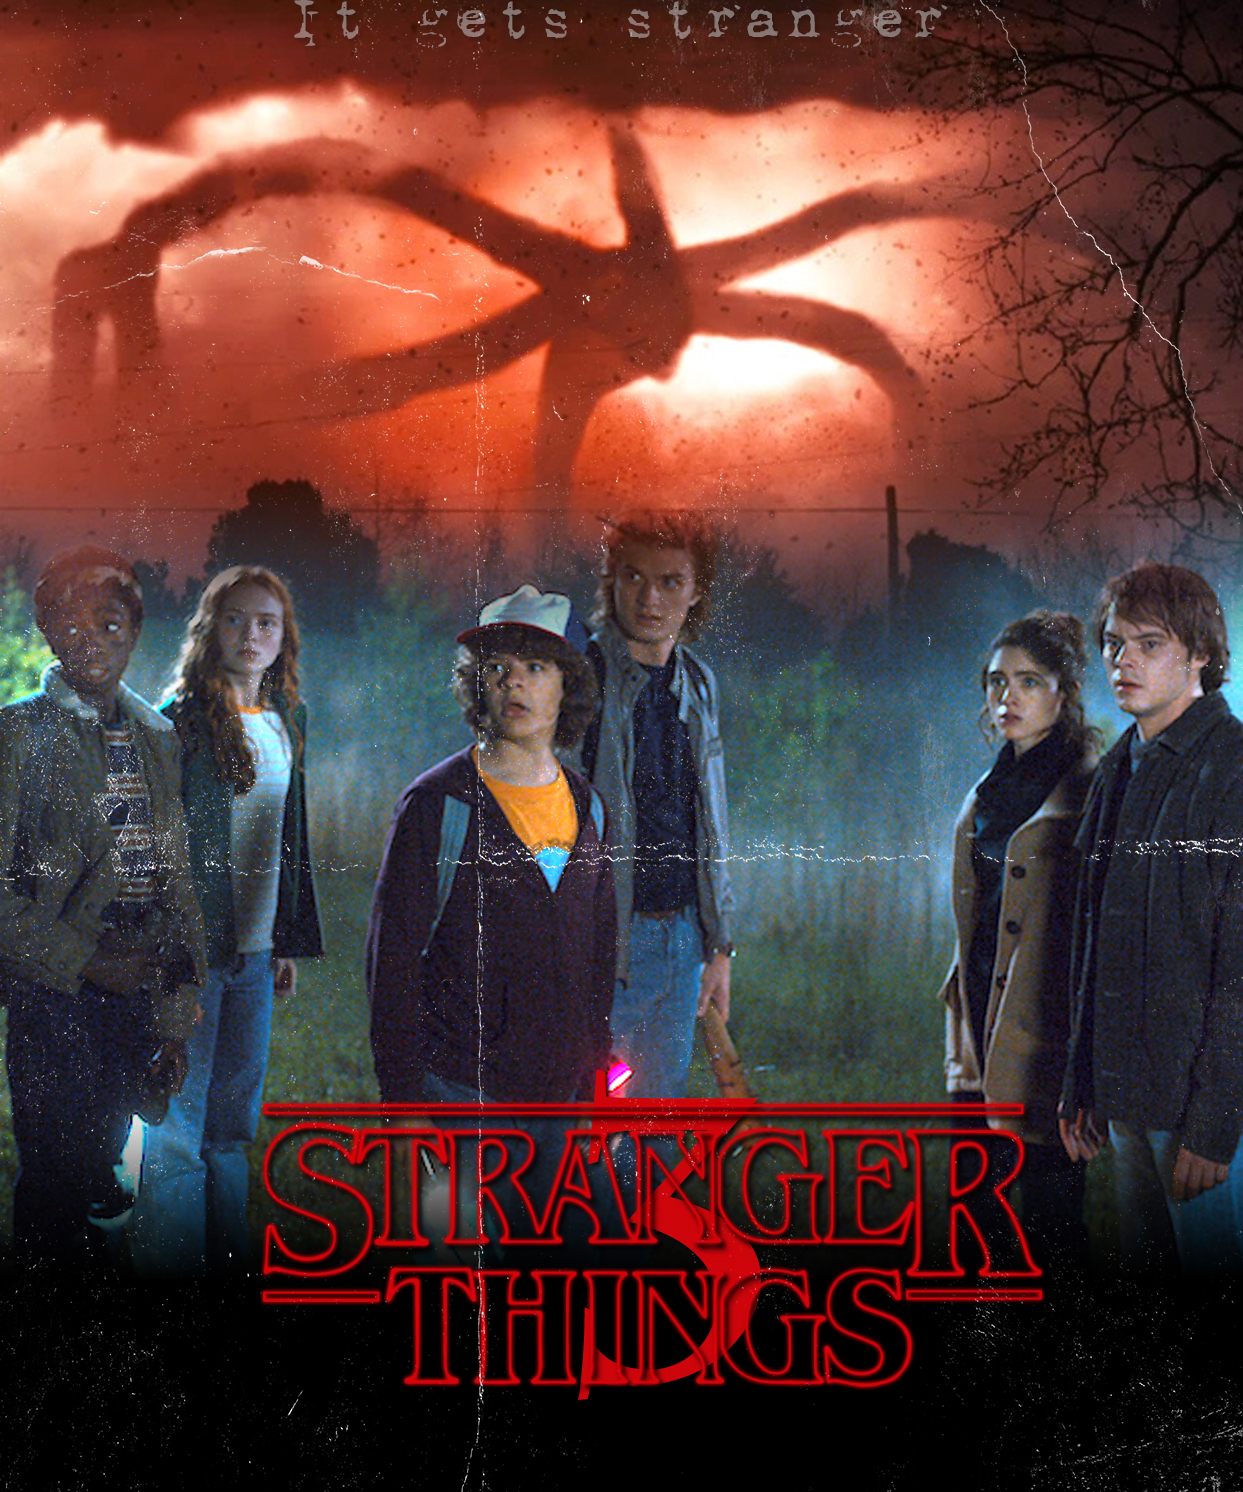 Image result for stranger things season 3 poster